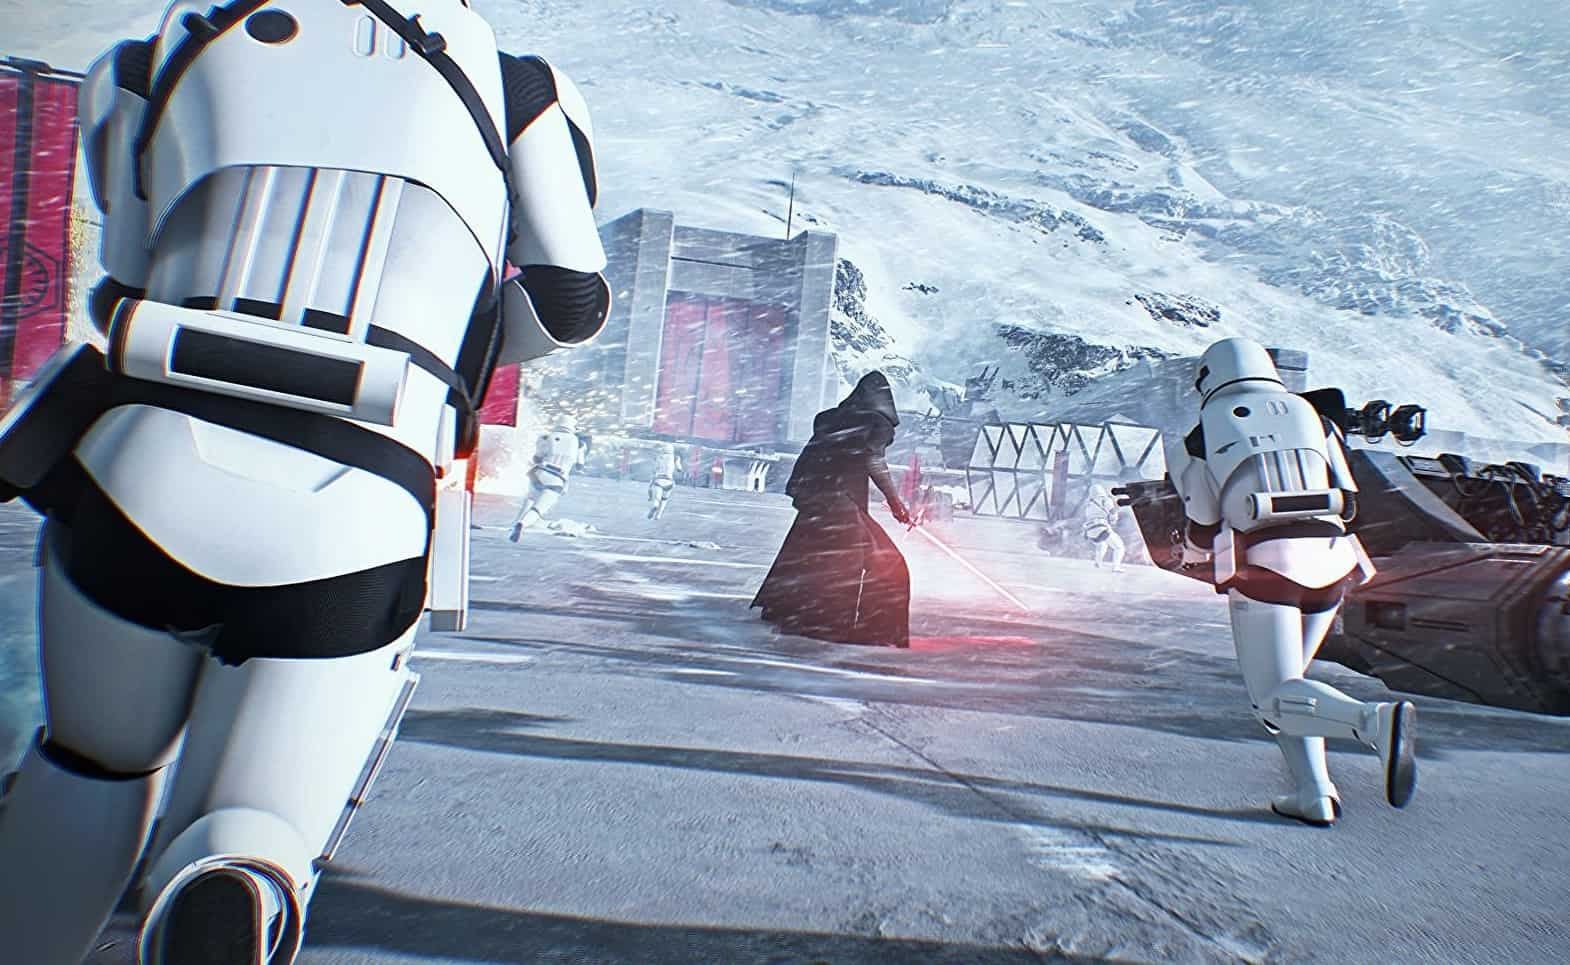 Star Wars Battlefront 2 loot boxes investigated by Belgian Gaming Commission